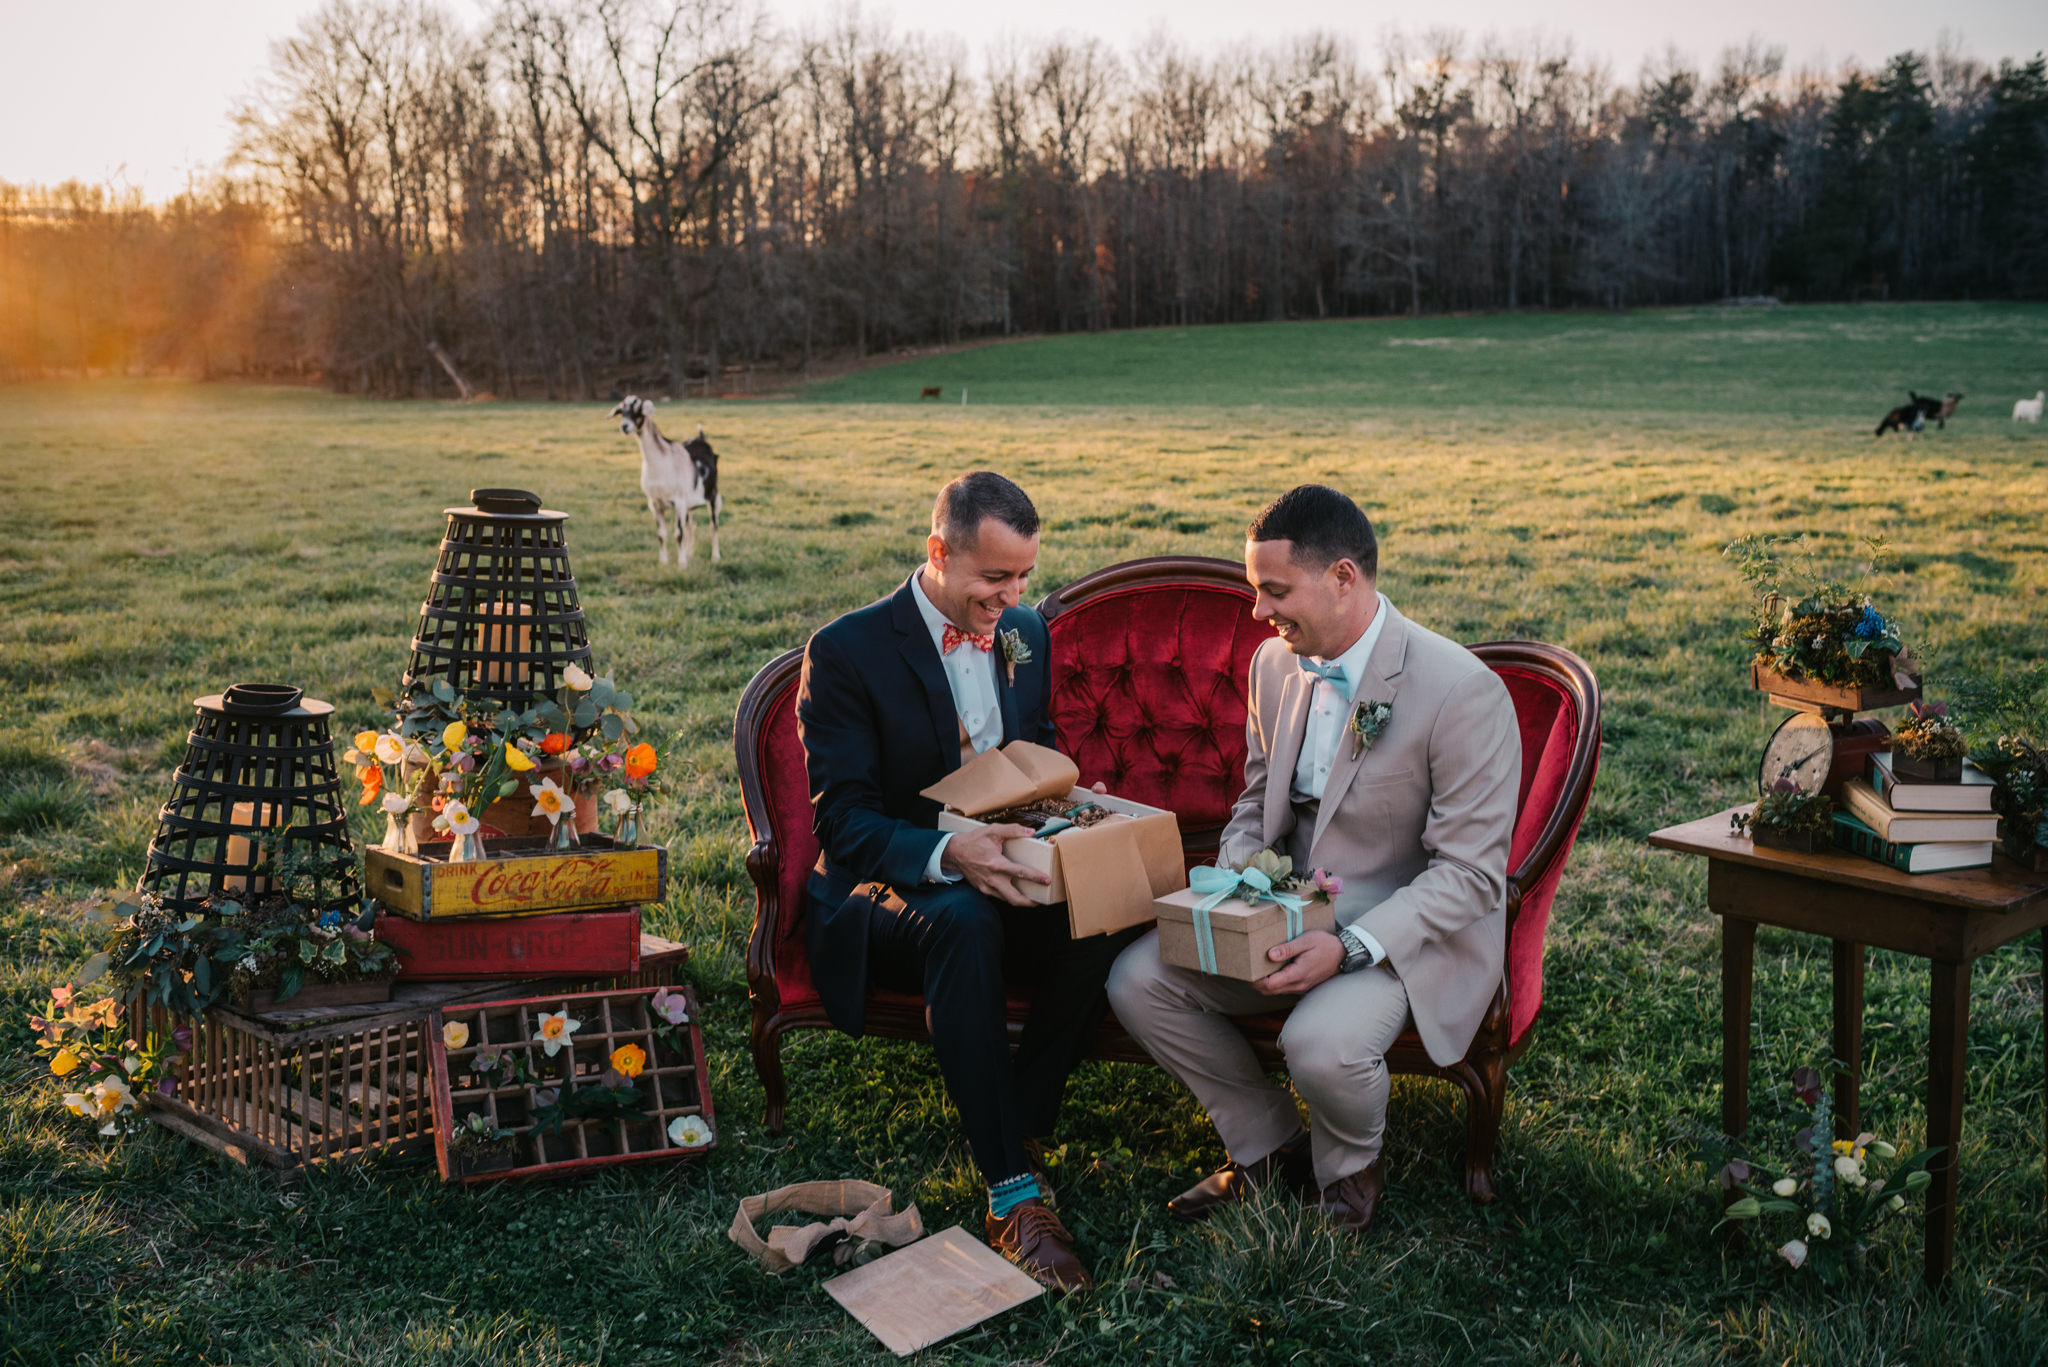 The grooms sit on the red couch and give each other gifts during the rustic styled engagement session with Rose Trail Images at Windy Hill Farm near Raleigh, NC.